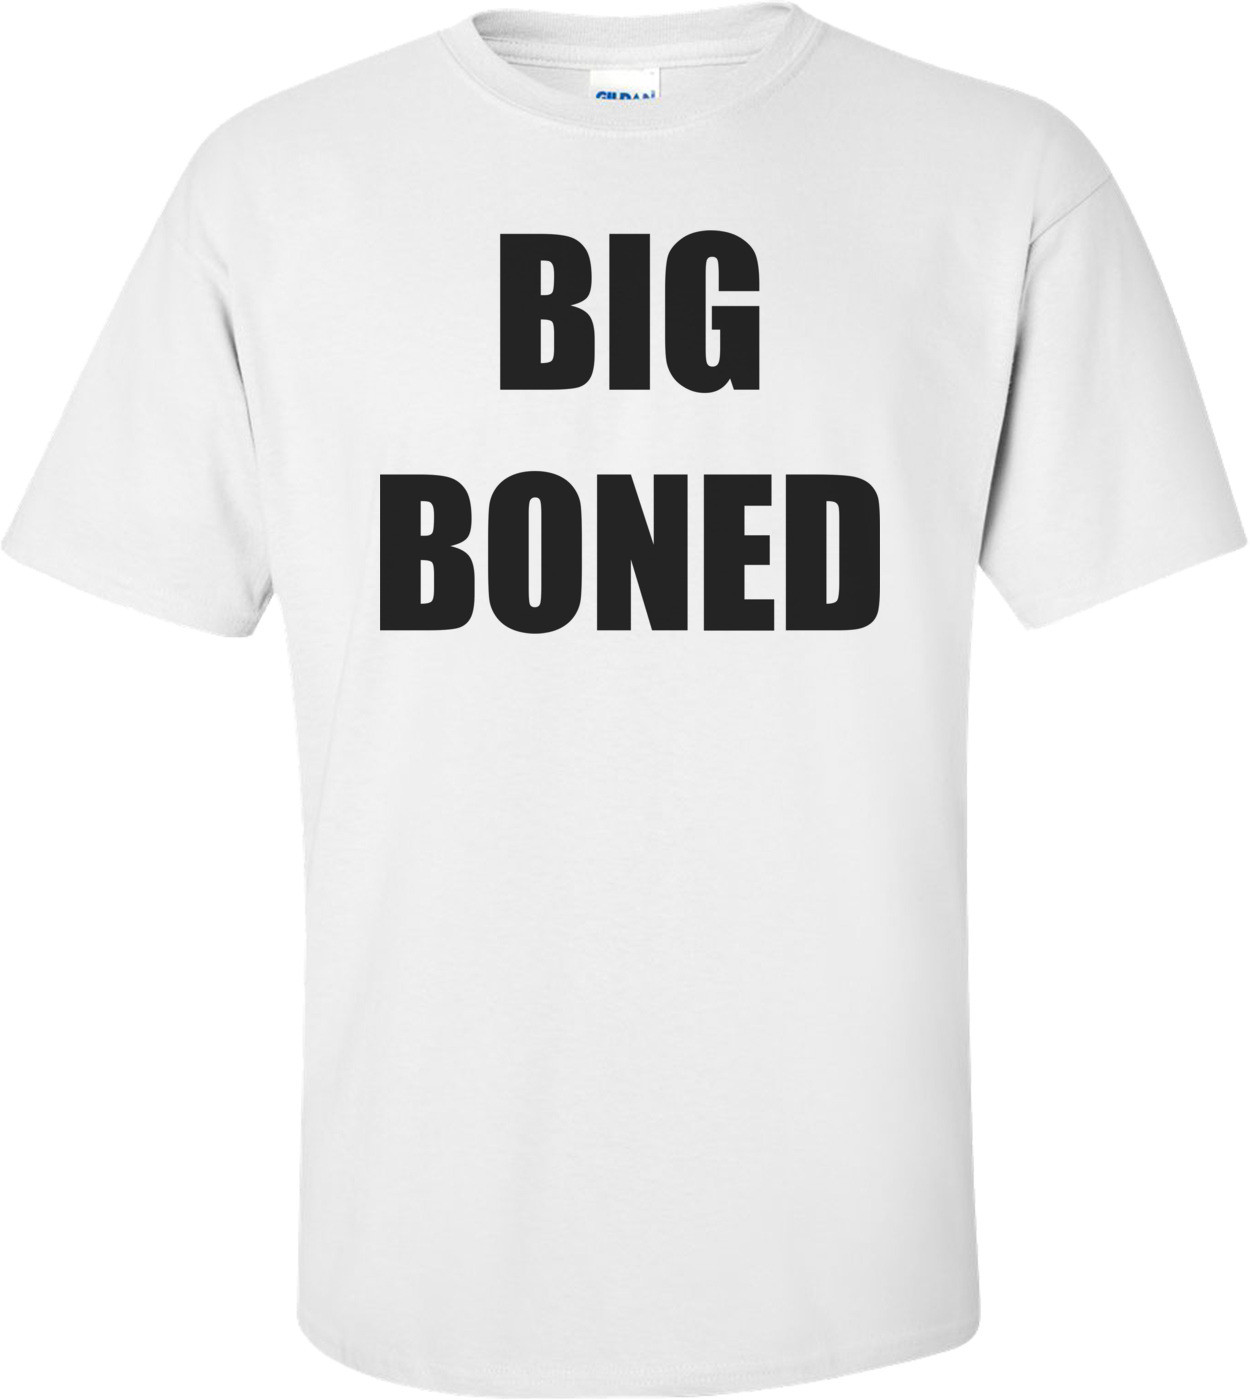 BIG BONED Shirt